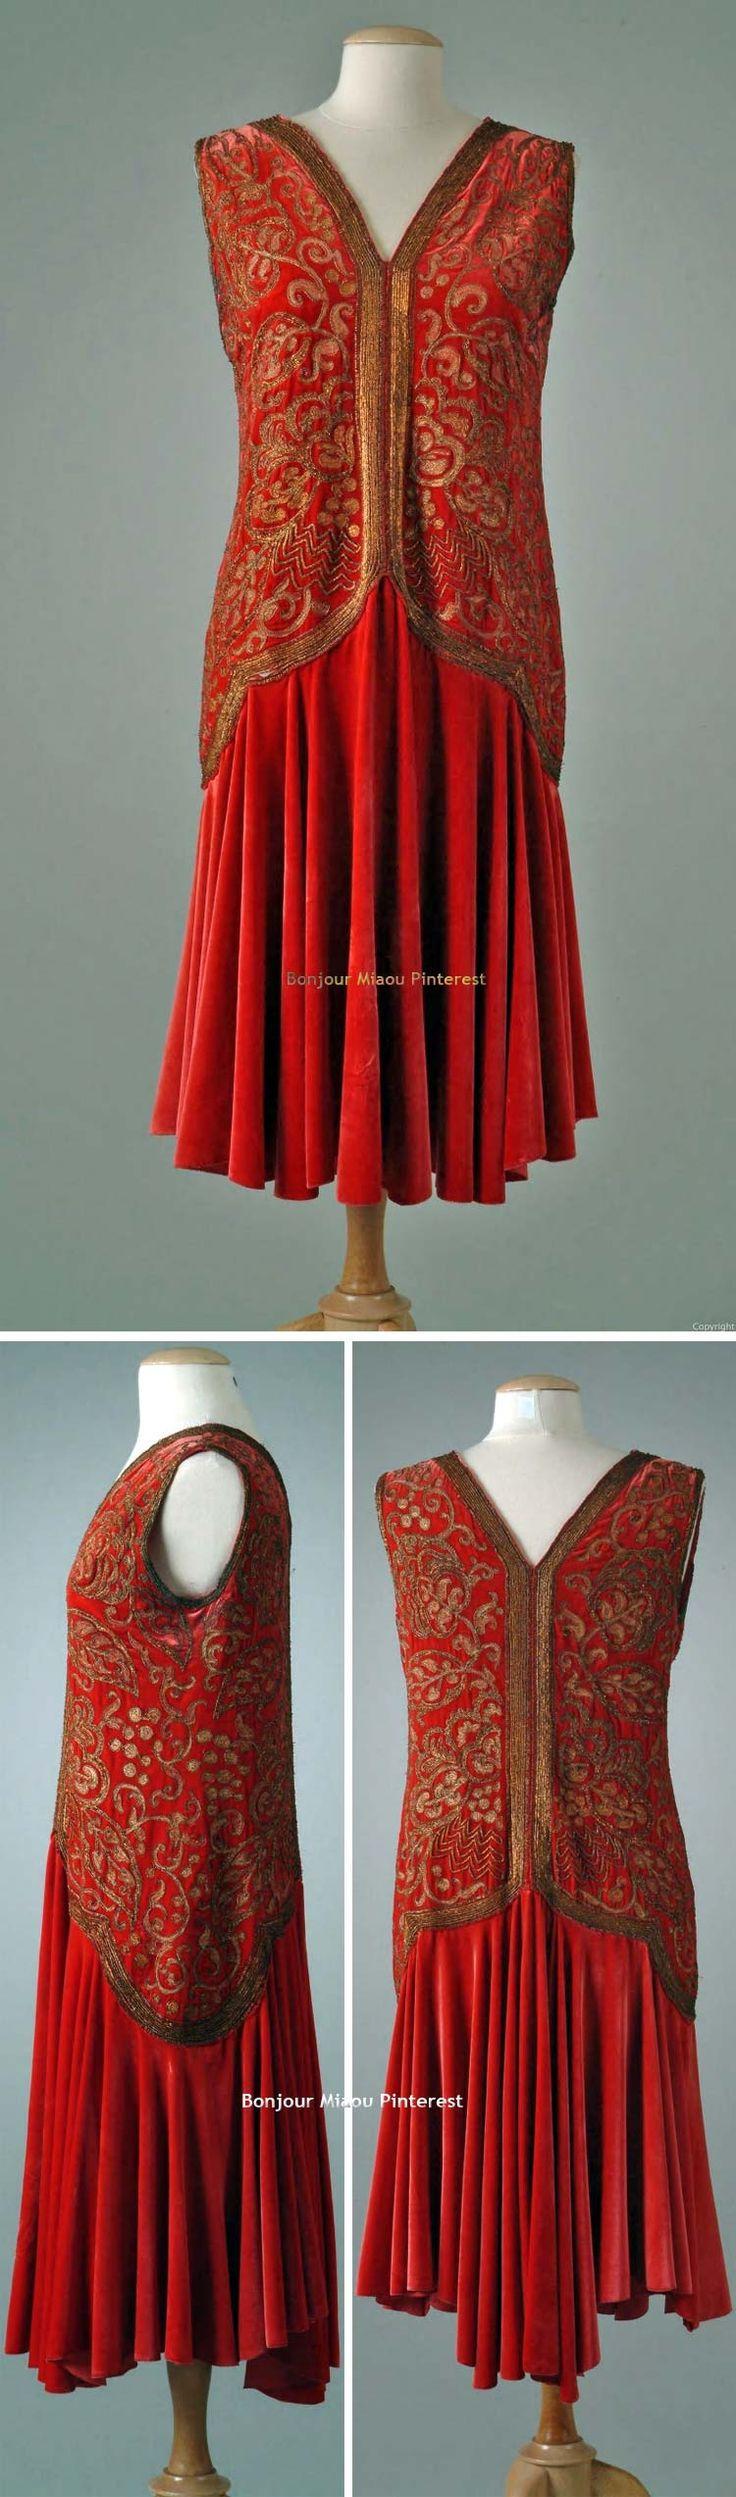 Dinner dress ca. late 1920s. Ruby-colored silk velvet with flared skirt. Bodice hand-embroidered with gold metallic thread. Meadow Brook Hall Historic Costume Collection, Oakland Univ.